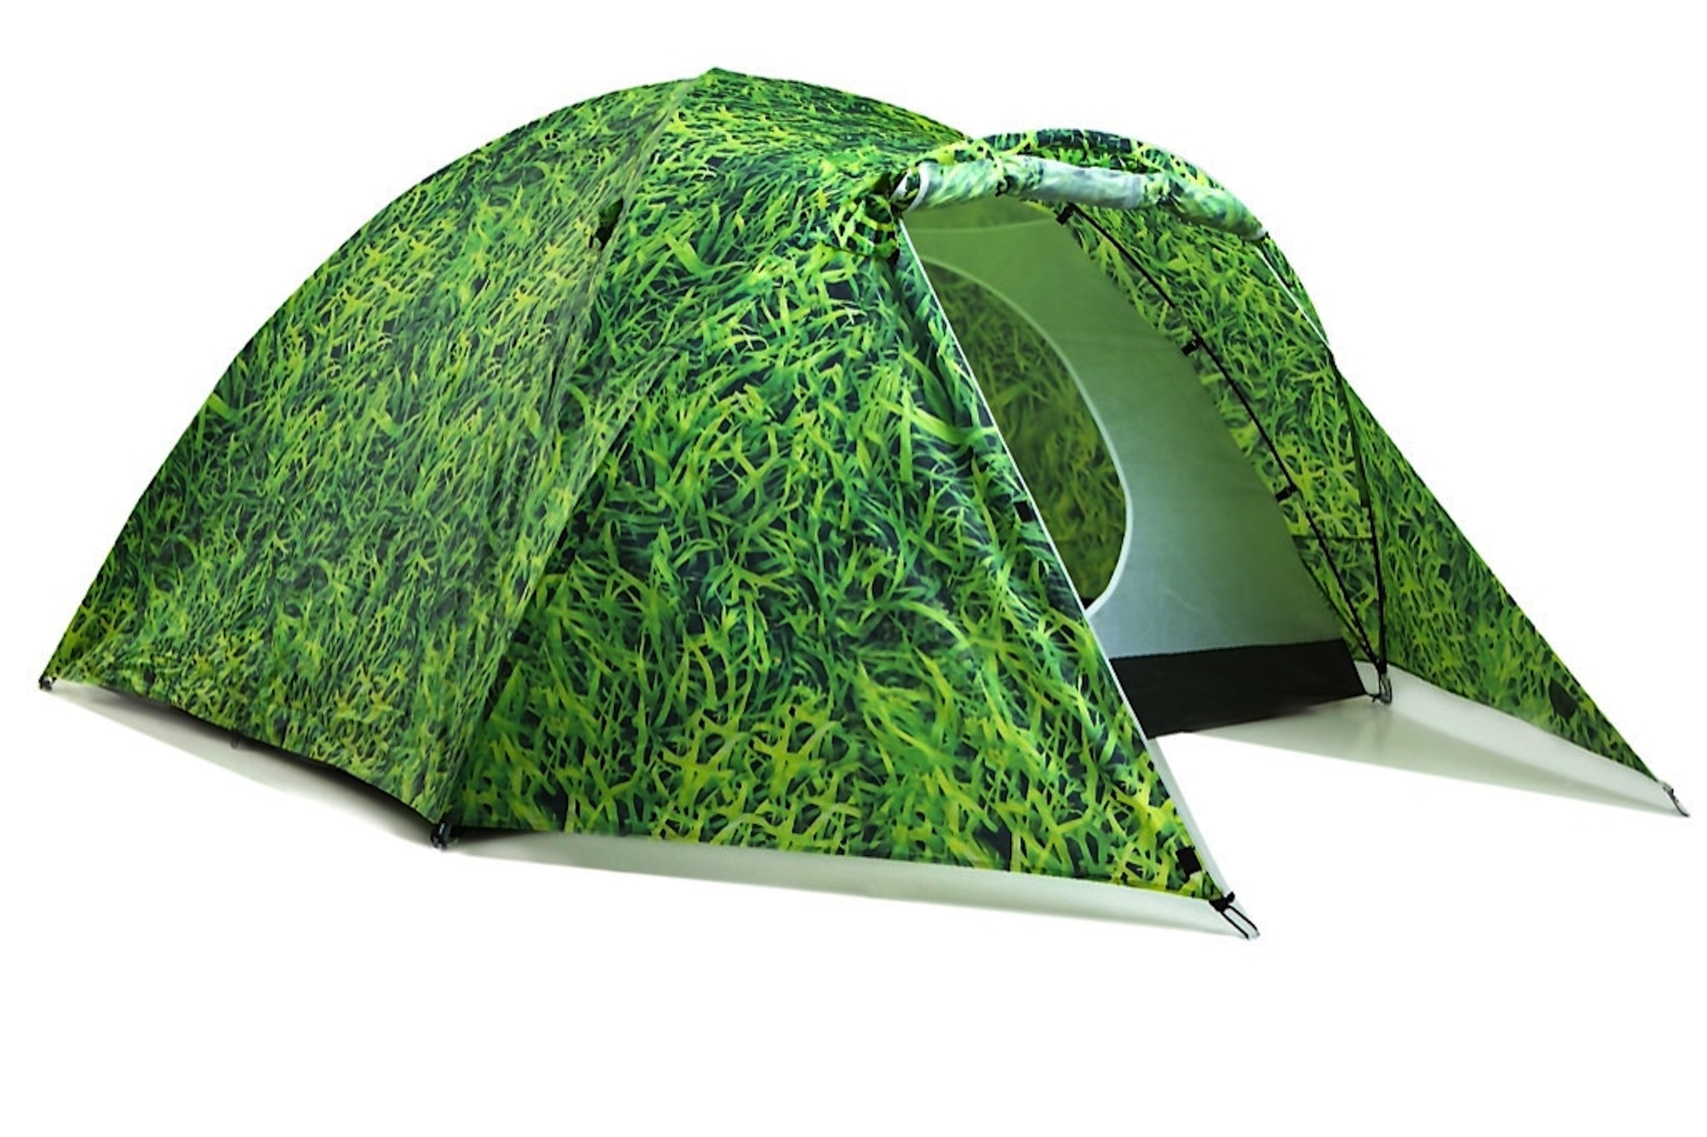 5 of the coolest camping accessories